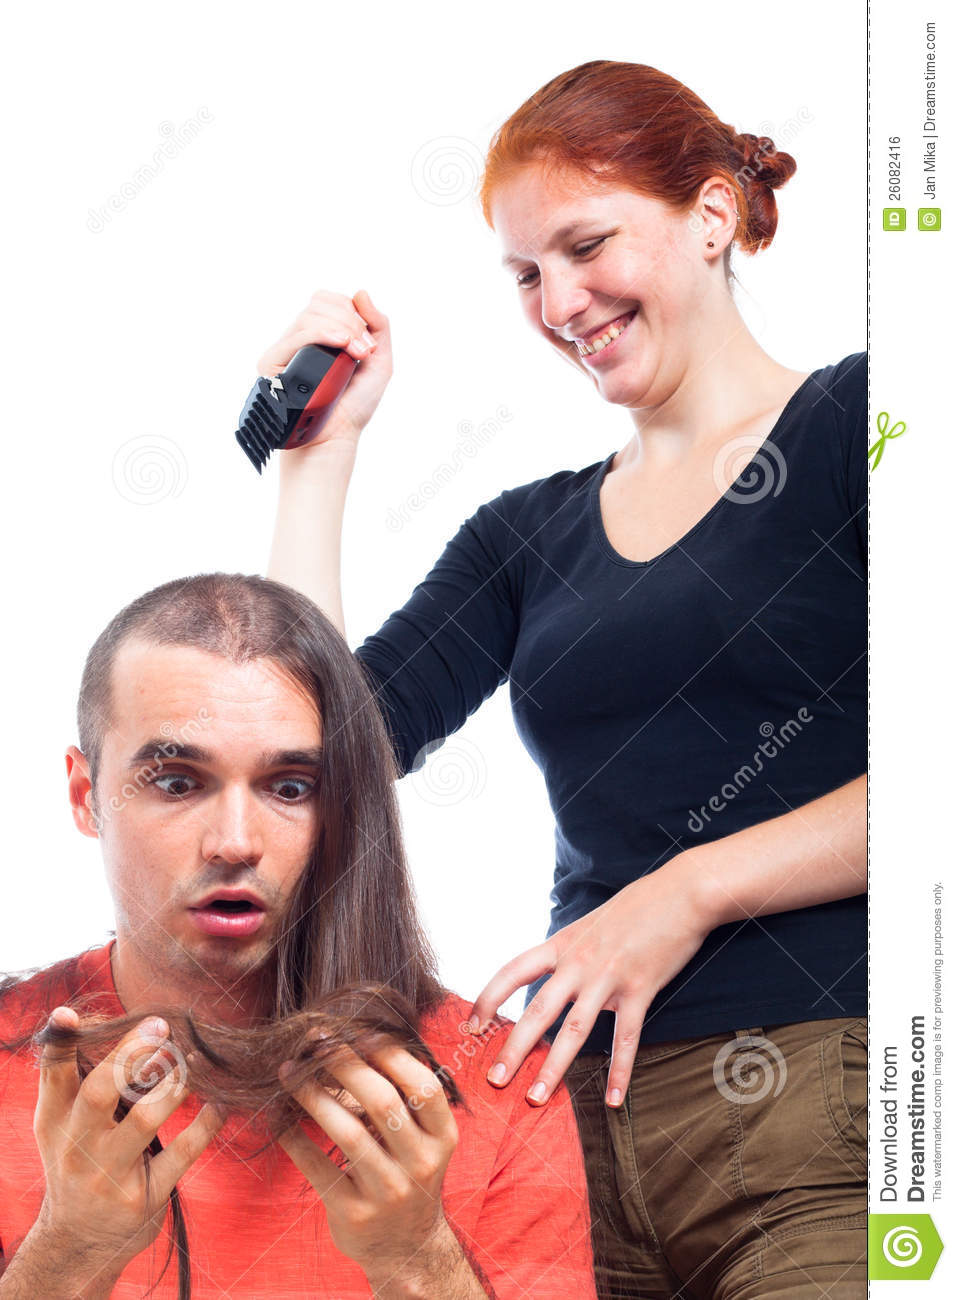 Funny Hairdressing Royalty Free Stock Image - Image: 26082416